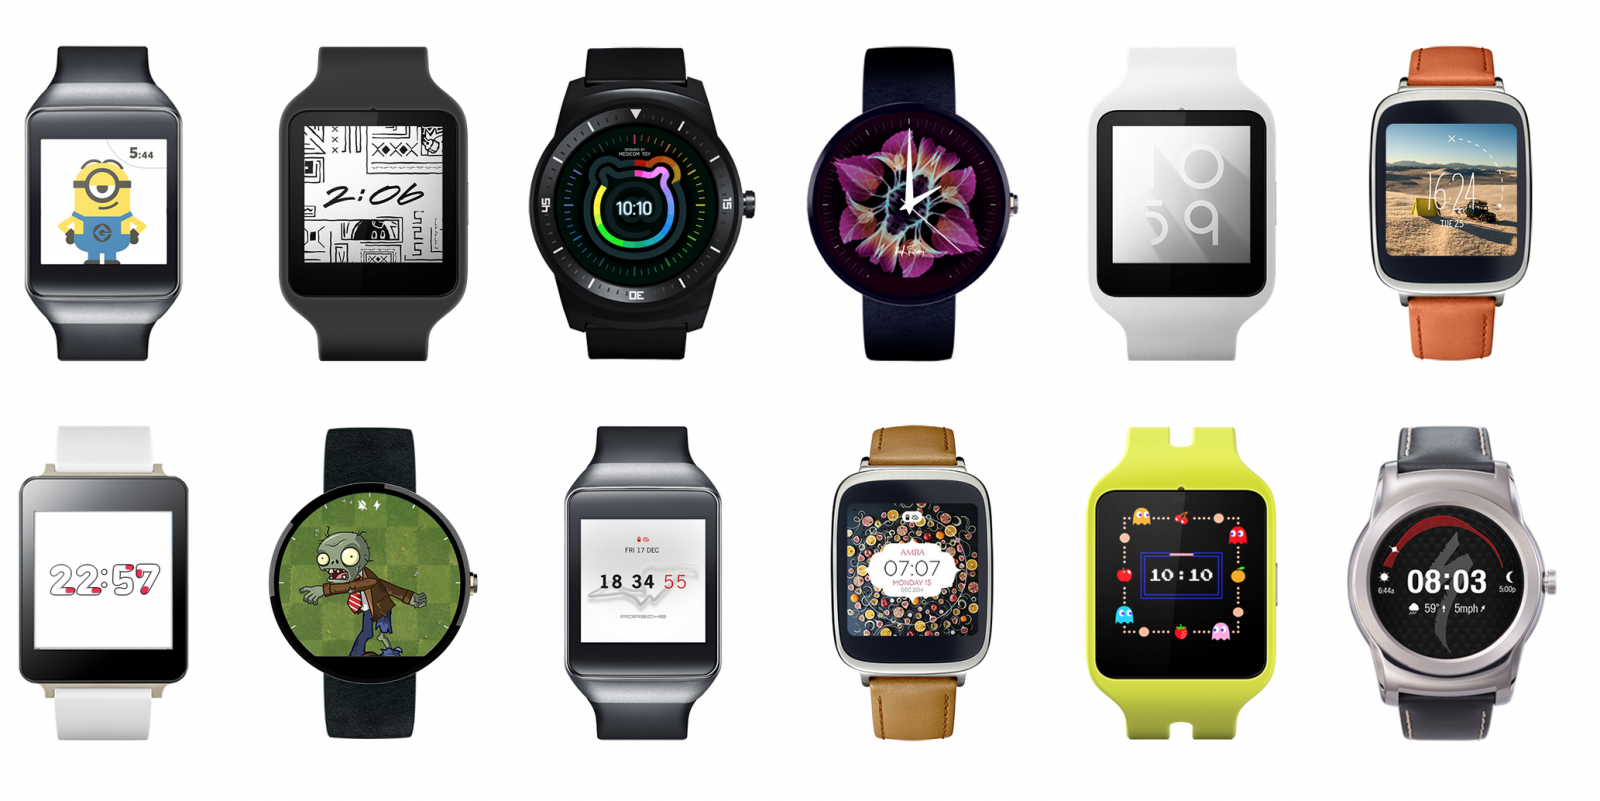 Android Wear 5.1 update announced ahead of Apple Watch launch